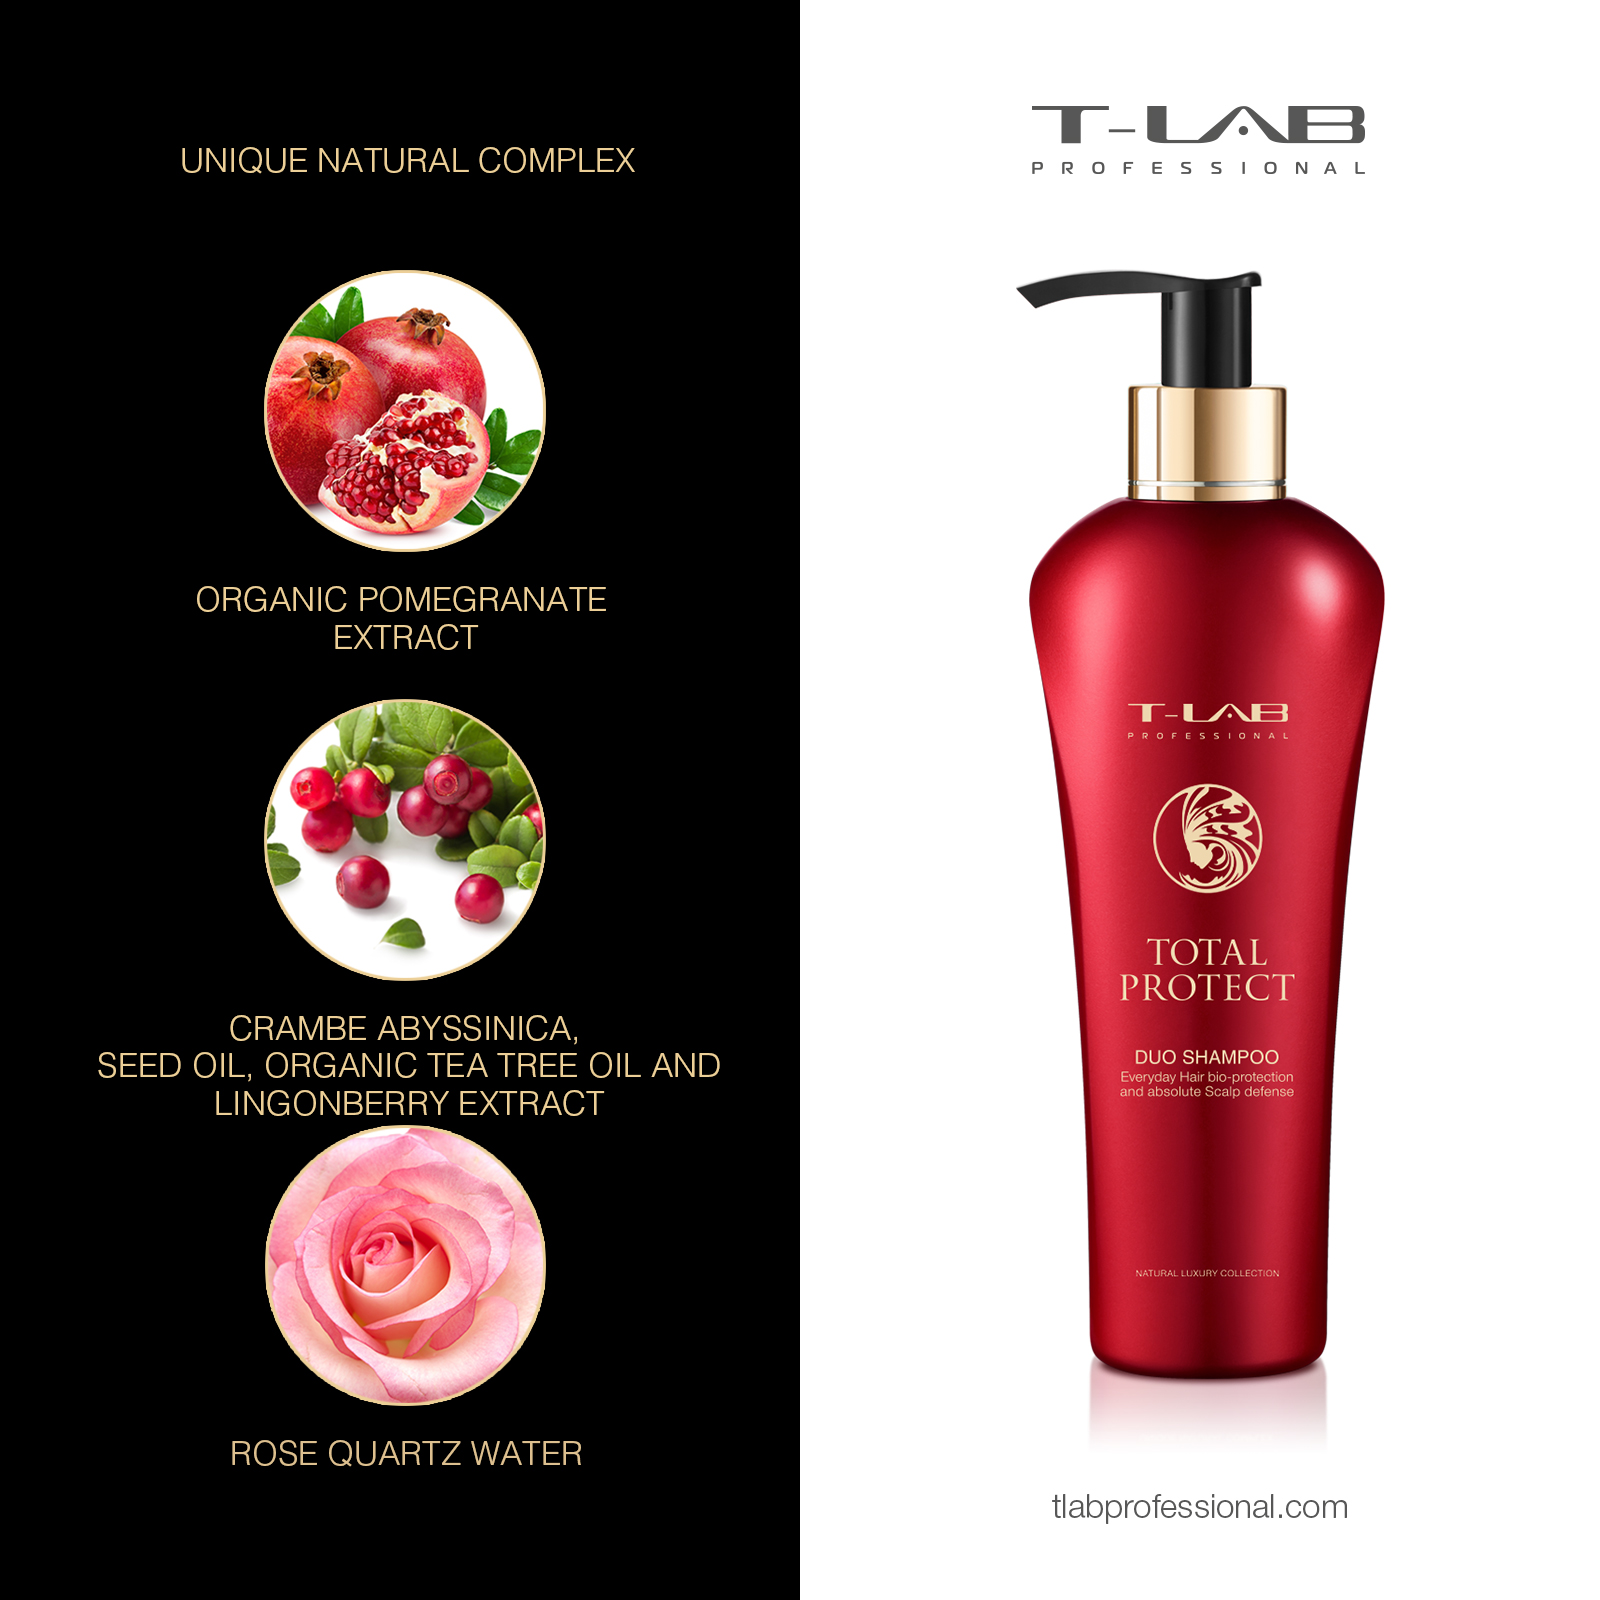 Total Protect DUO Shampoo: ROSE QUARTZ WATER, ORGANIC POMEGRANATE EXTRACT, CRAMBE ABYSSINICA SEED OIL, ORGANIC TEA TREE OIL and LINGONBERRY EXTRACT